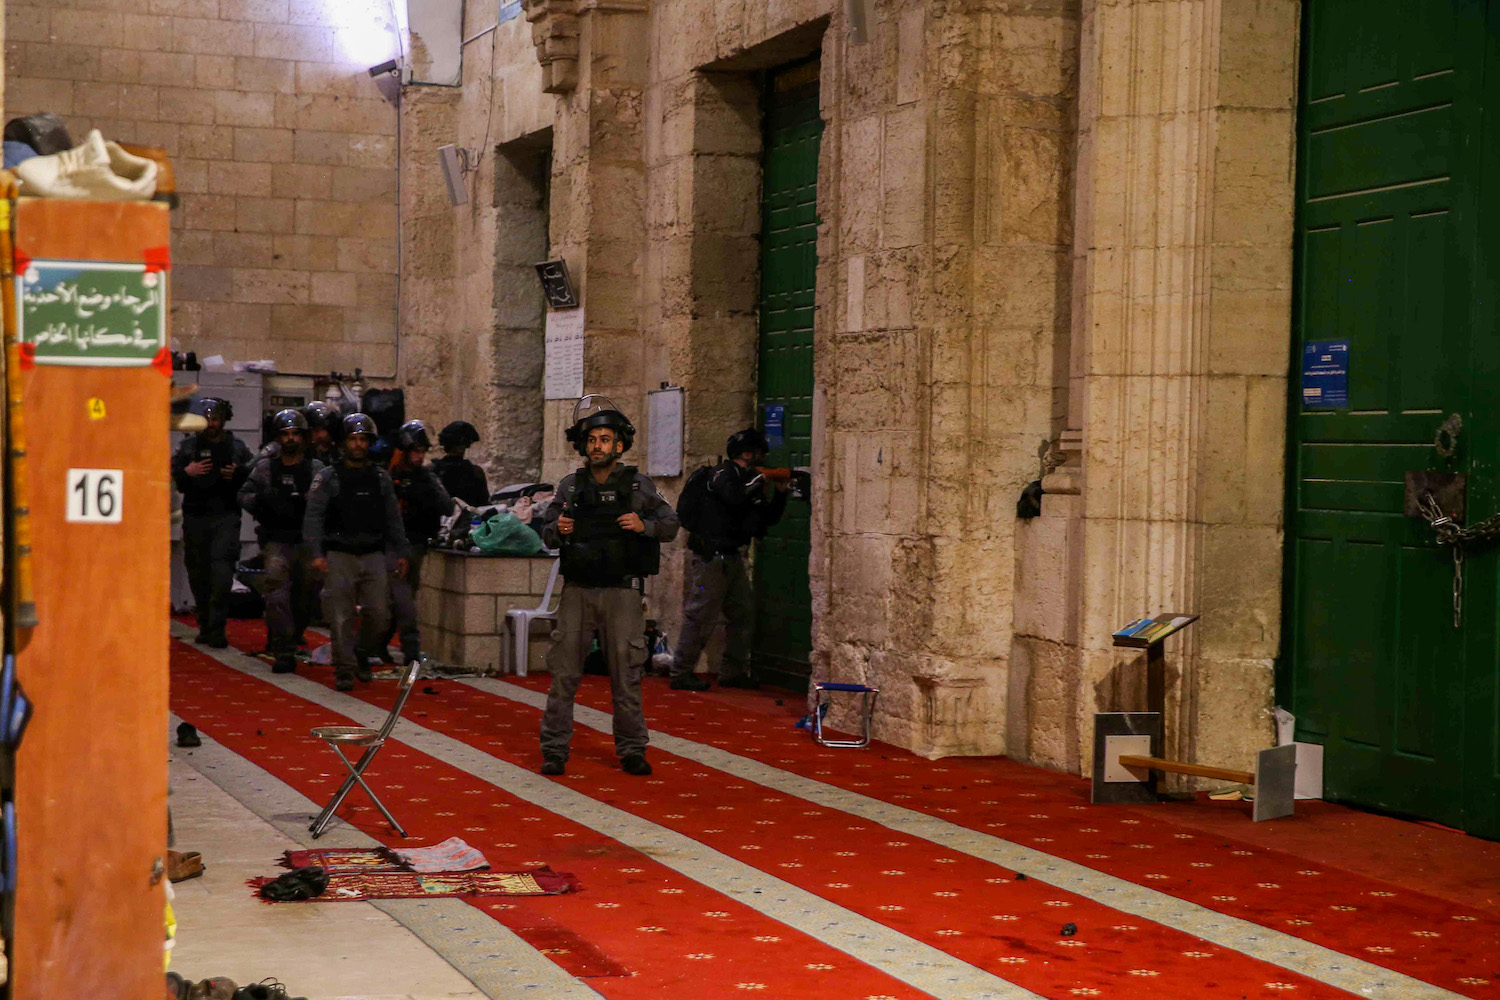 Israeli riot police raid the Al-Aqsa Mosque compound in Jerusalem's Old City, May 7, 2021. (Jamal Awad/Flash90)